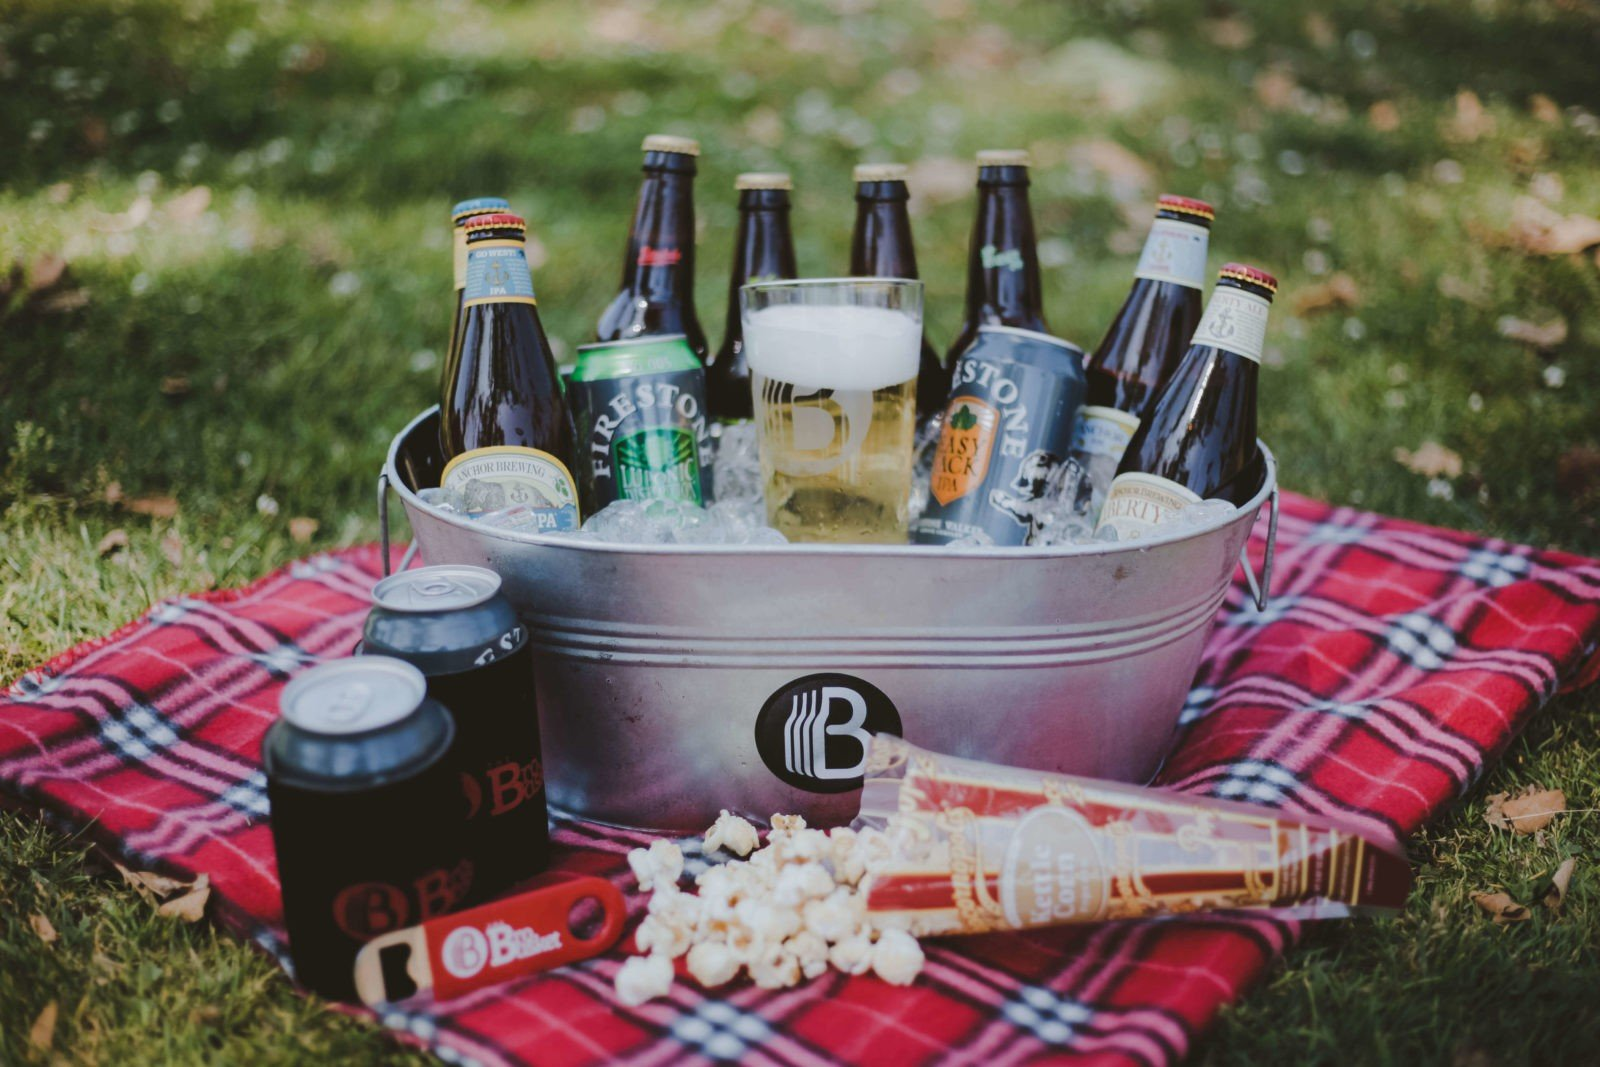 The Ultimate Beer college graduation gift for your brother - Beer Lovers Gift Basket | TheBroBasket